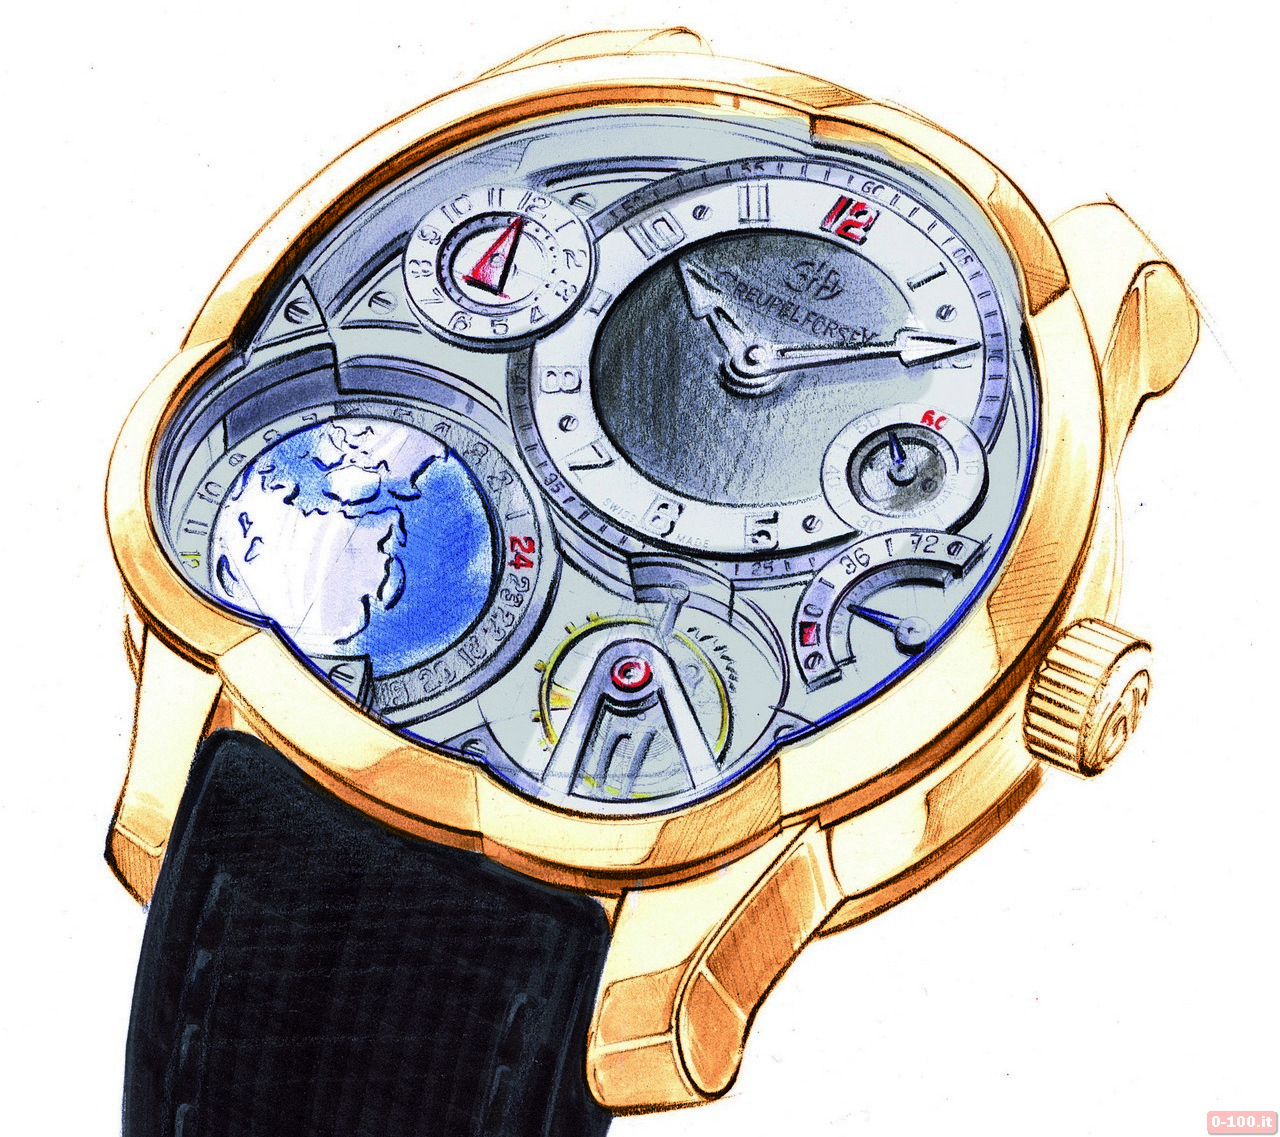 0-100.IT | Greubel Forsey GMT Oro Rosso